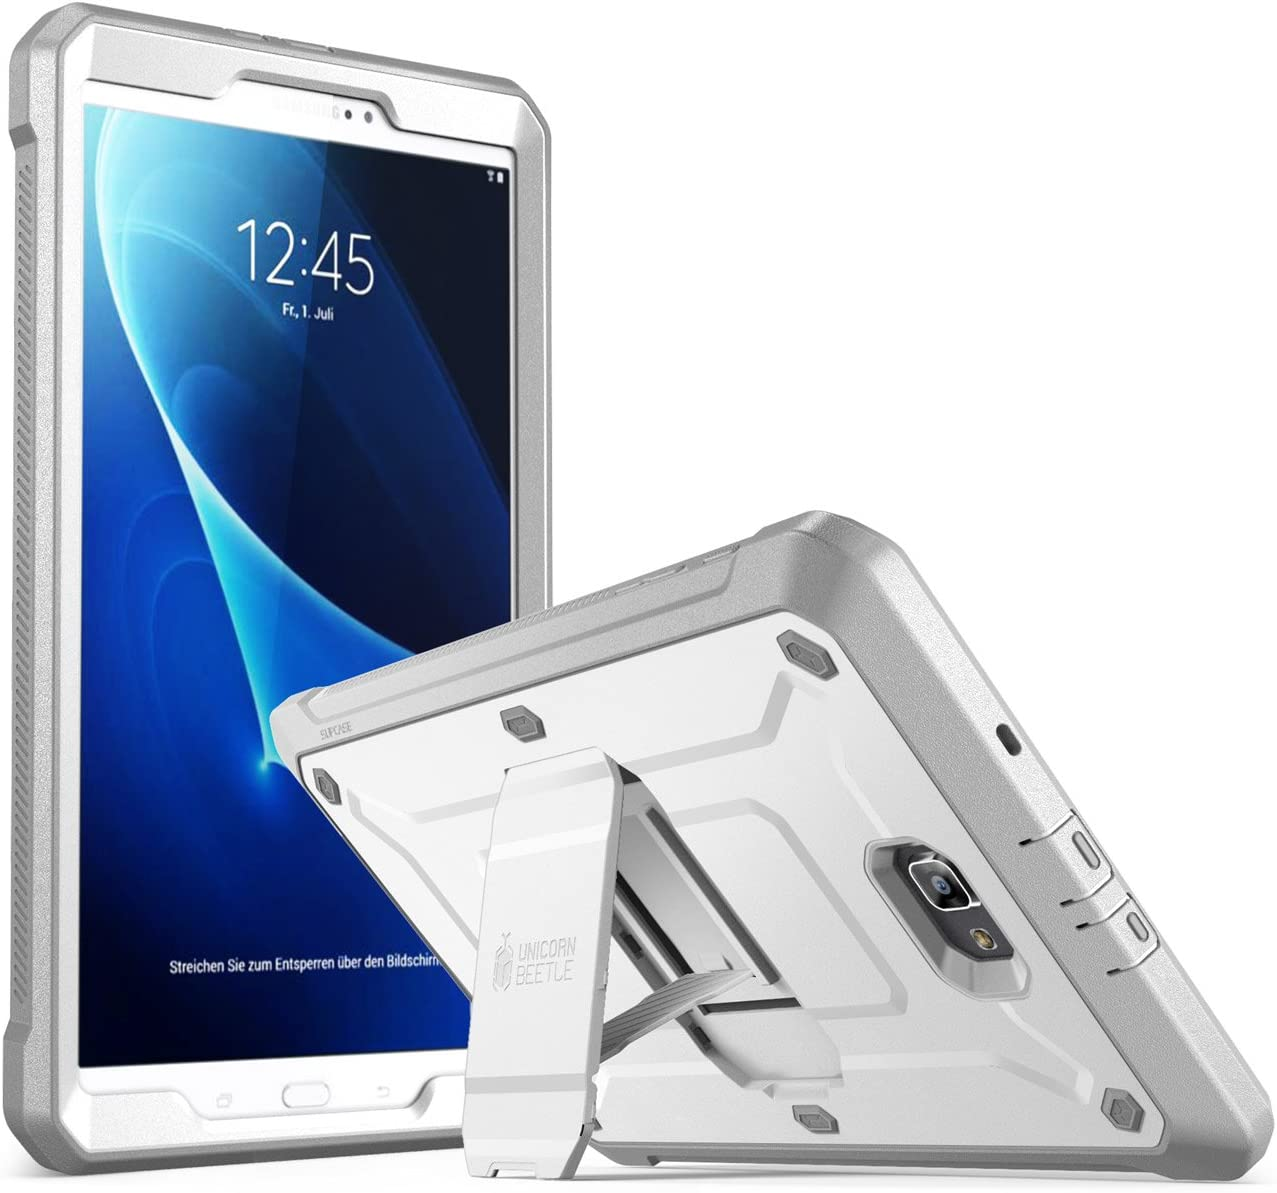 SUPCASE Galaxy Tab A 10.1 Case,[Heavy Duty] [Unicorn Beetle Pro Series] Full-Body Rugged Protective Case with Built-In Screen Protector for Samsung Galaxy Tab A 10.1 Inch 2016 (No Pen Version) (White)